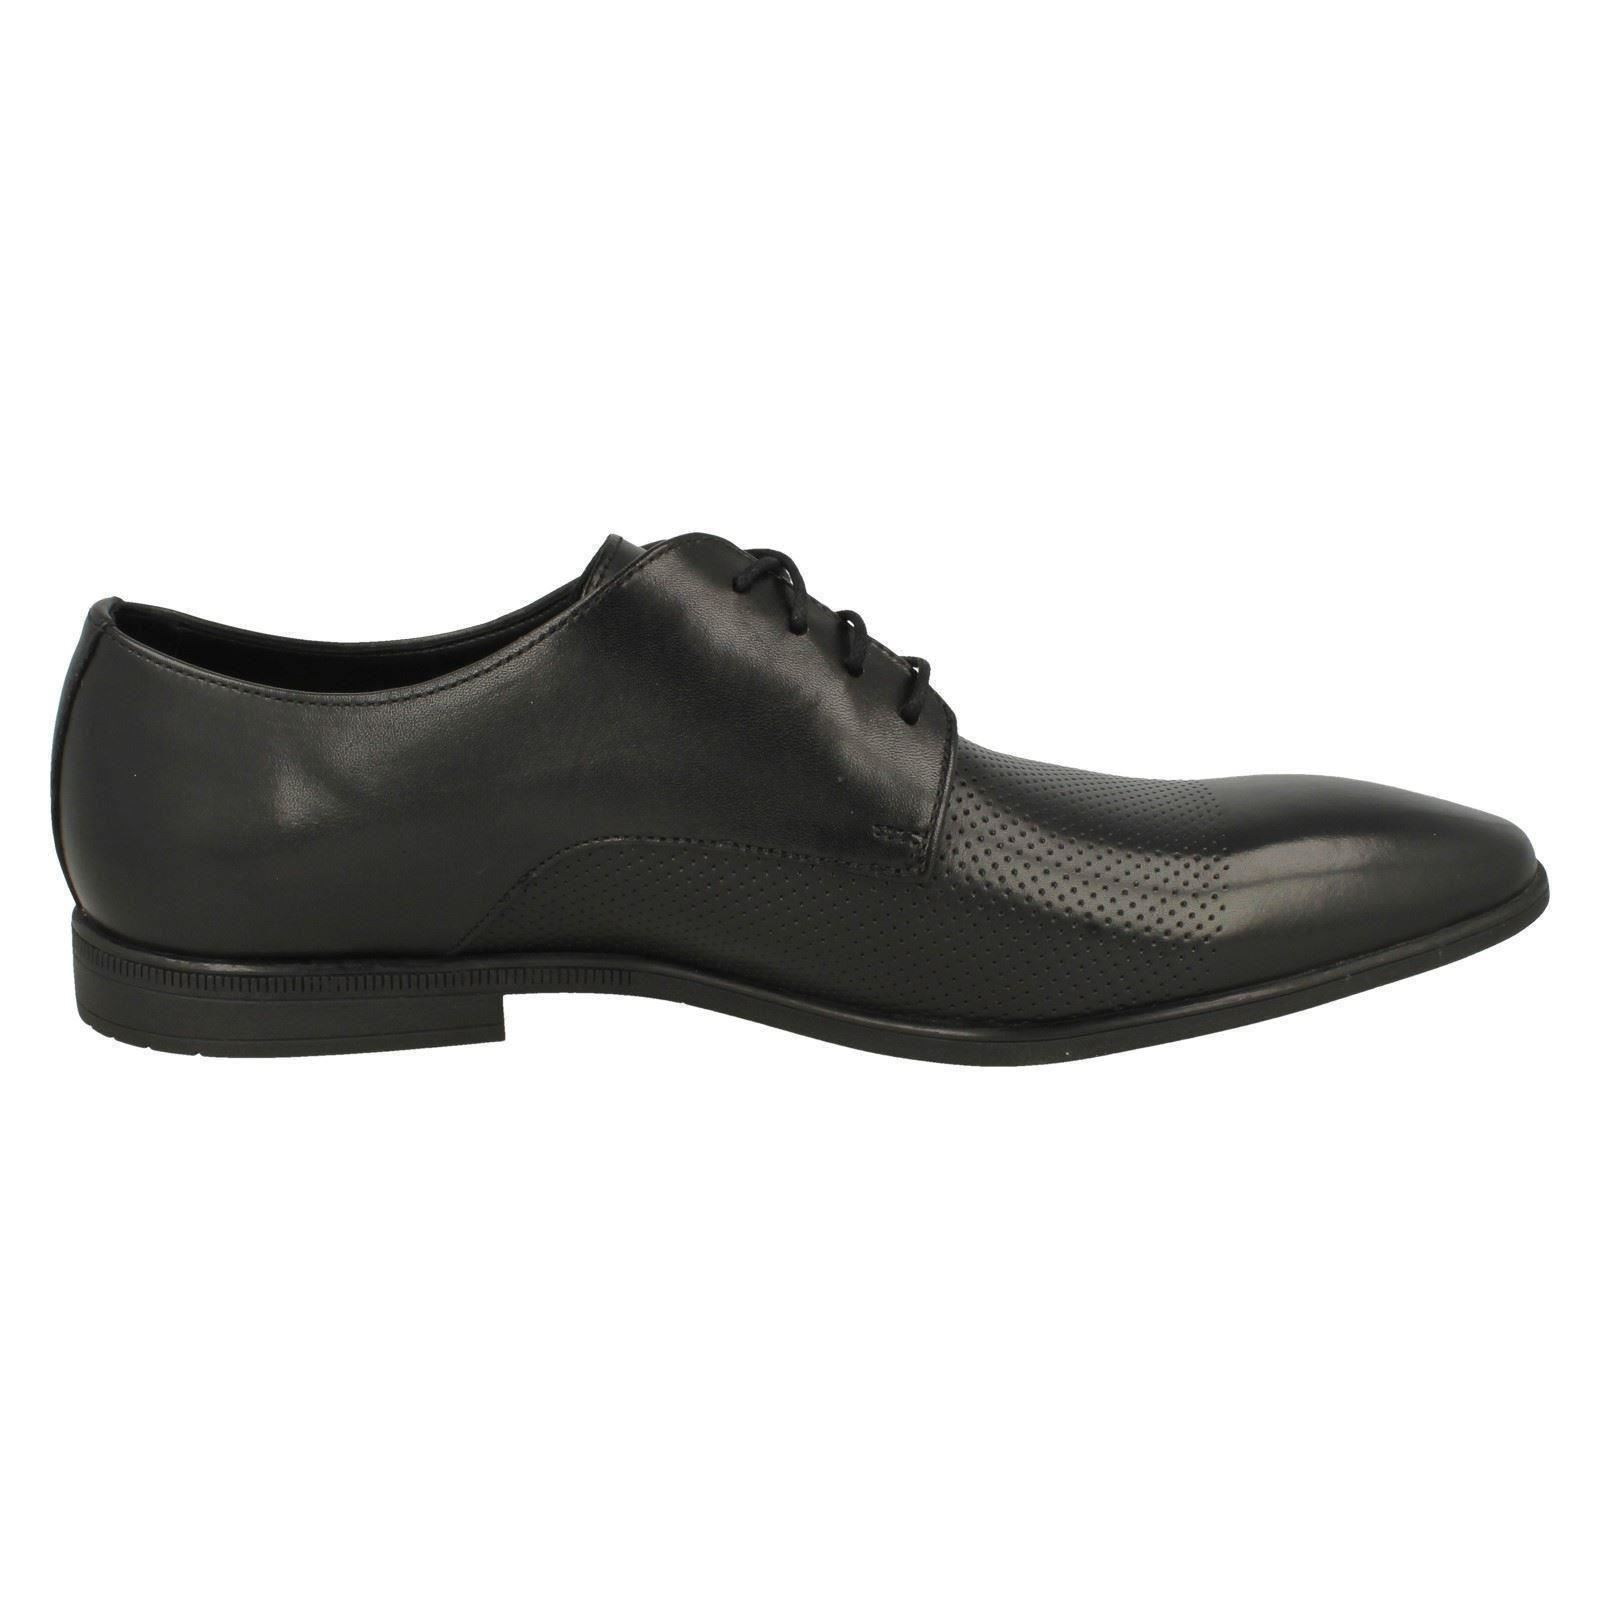 Uomo Clarks Formal Toe Lace Up Leder Rounded Toe Formal Schuhes - 'Bampton Cap' 1d030e